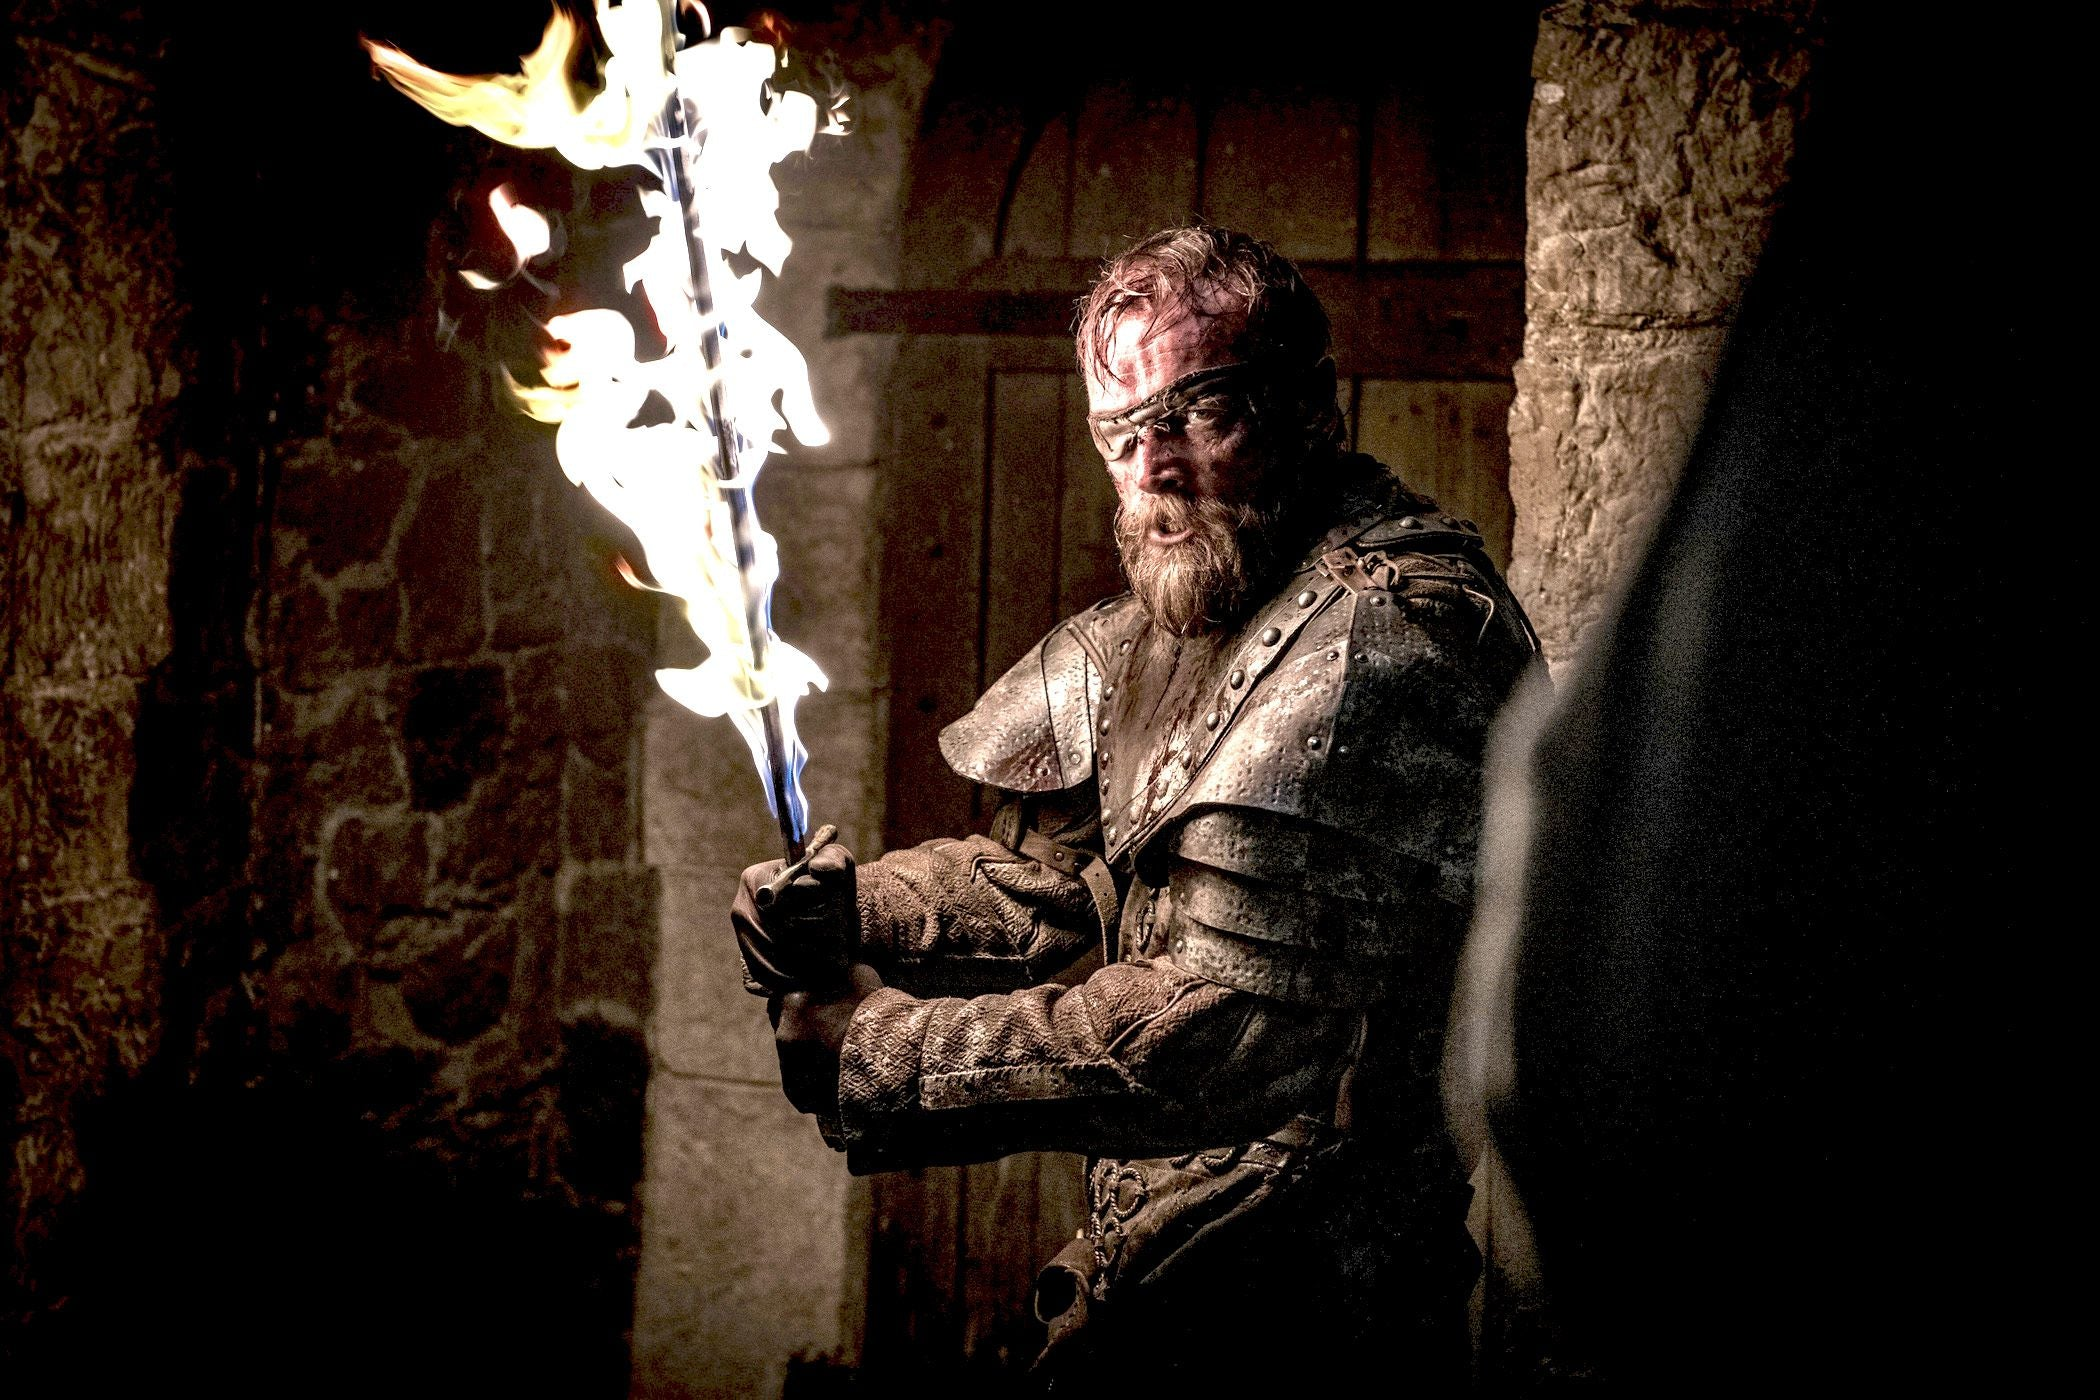 game of thrones season 8 episode 3 beric dondarrion